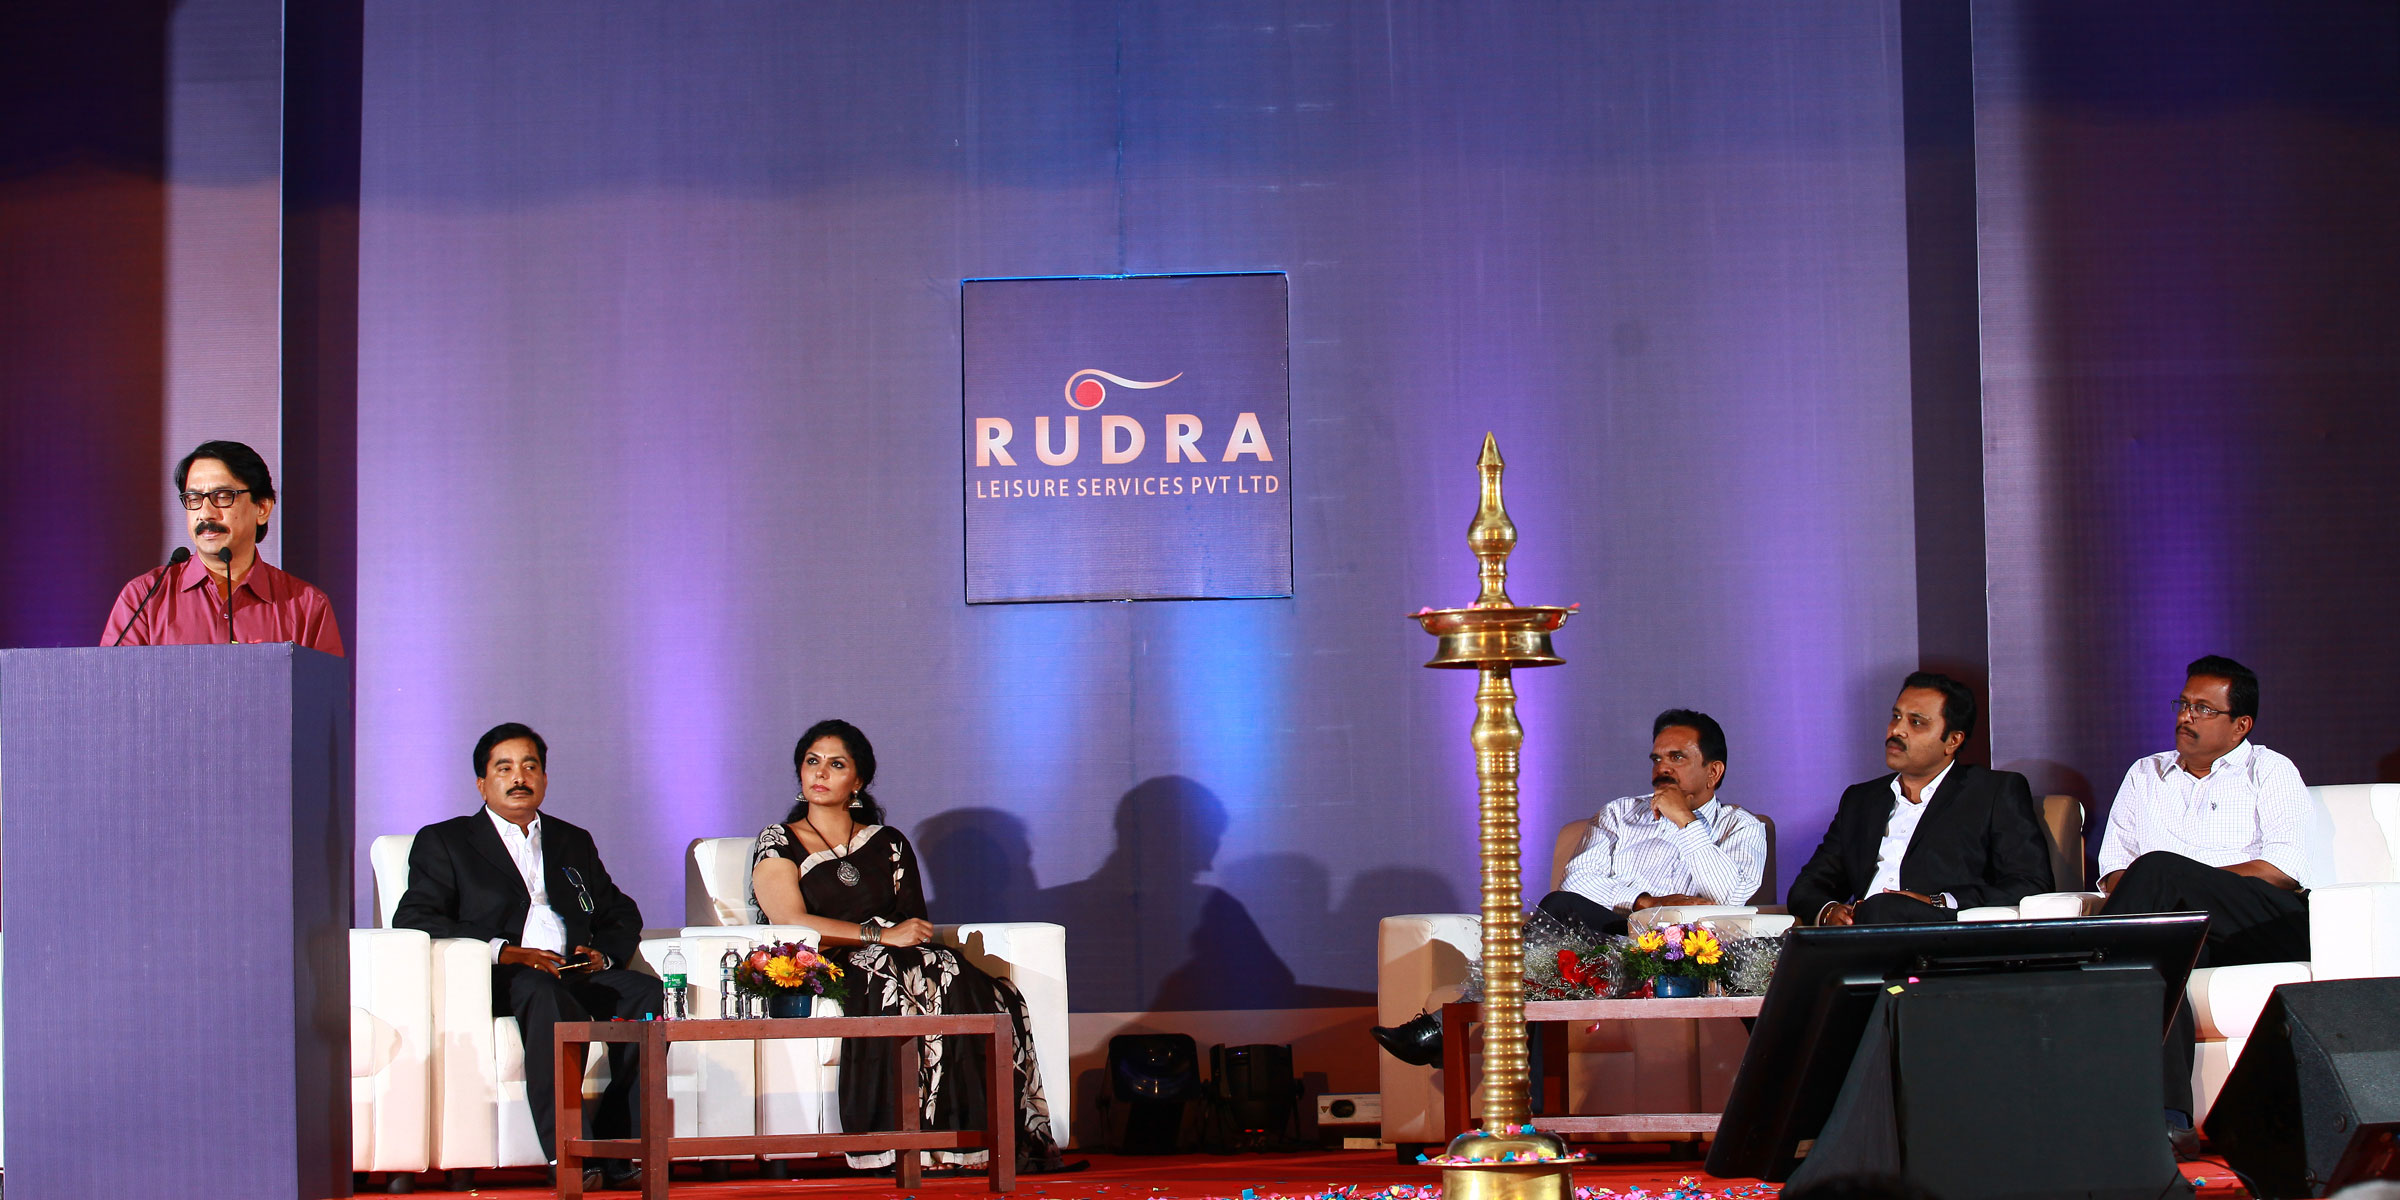 Rudra Leisure services